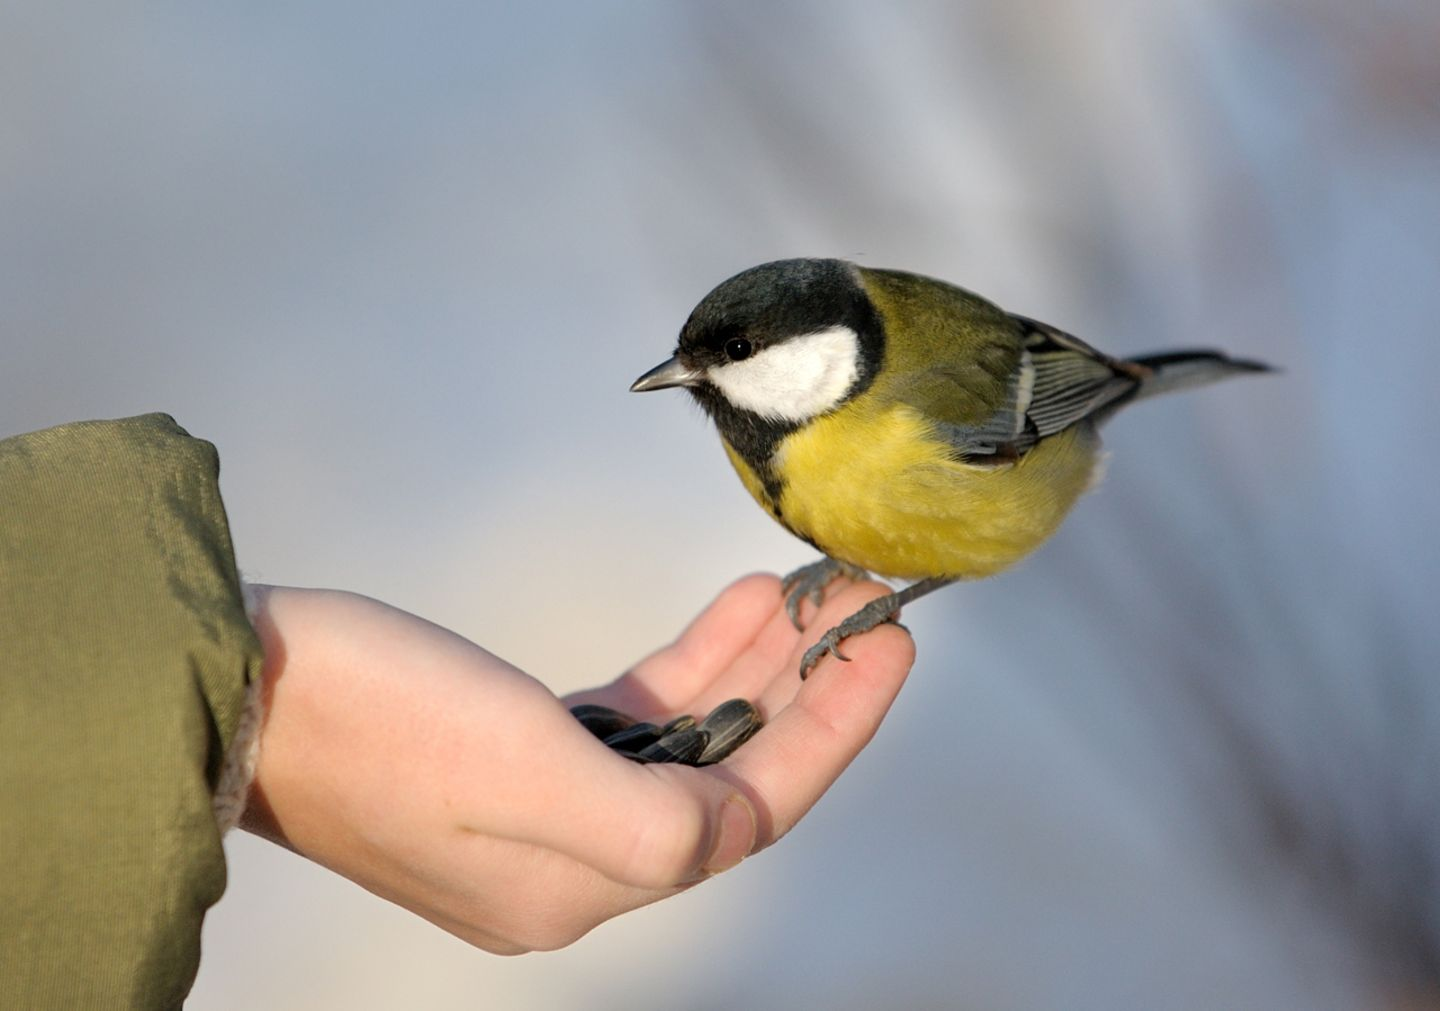 Englische Redewendung: A bird in the hand is worth two in the bush